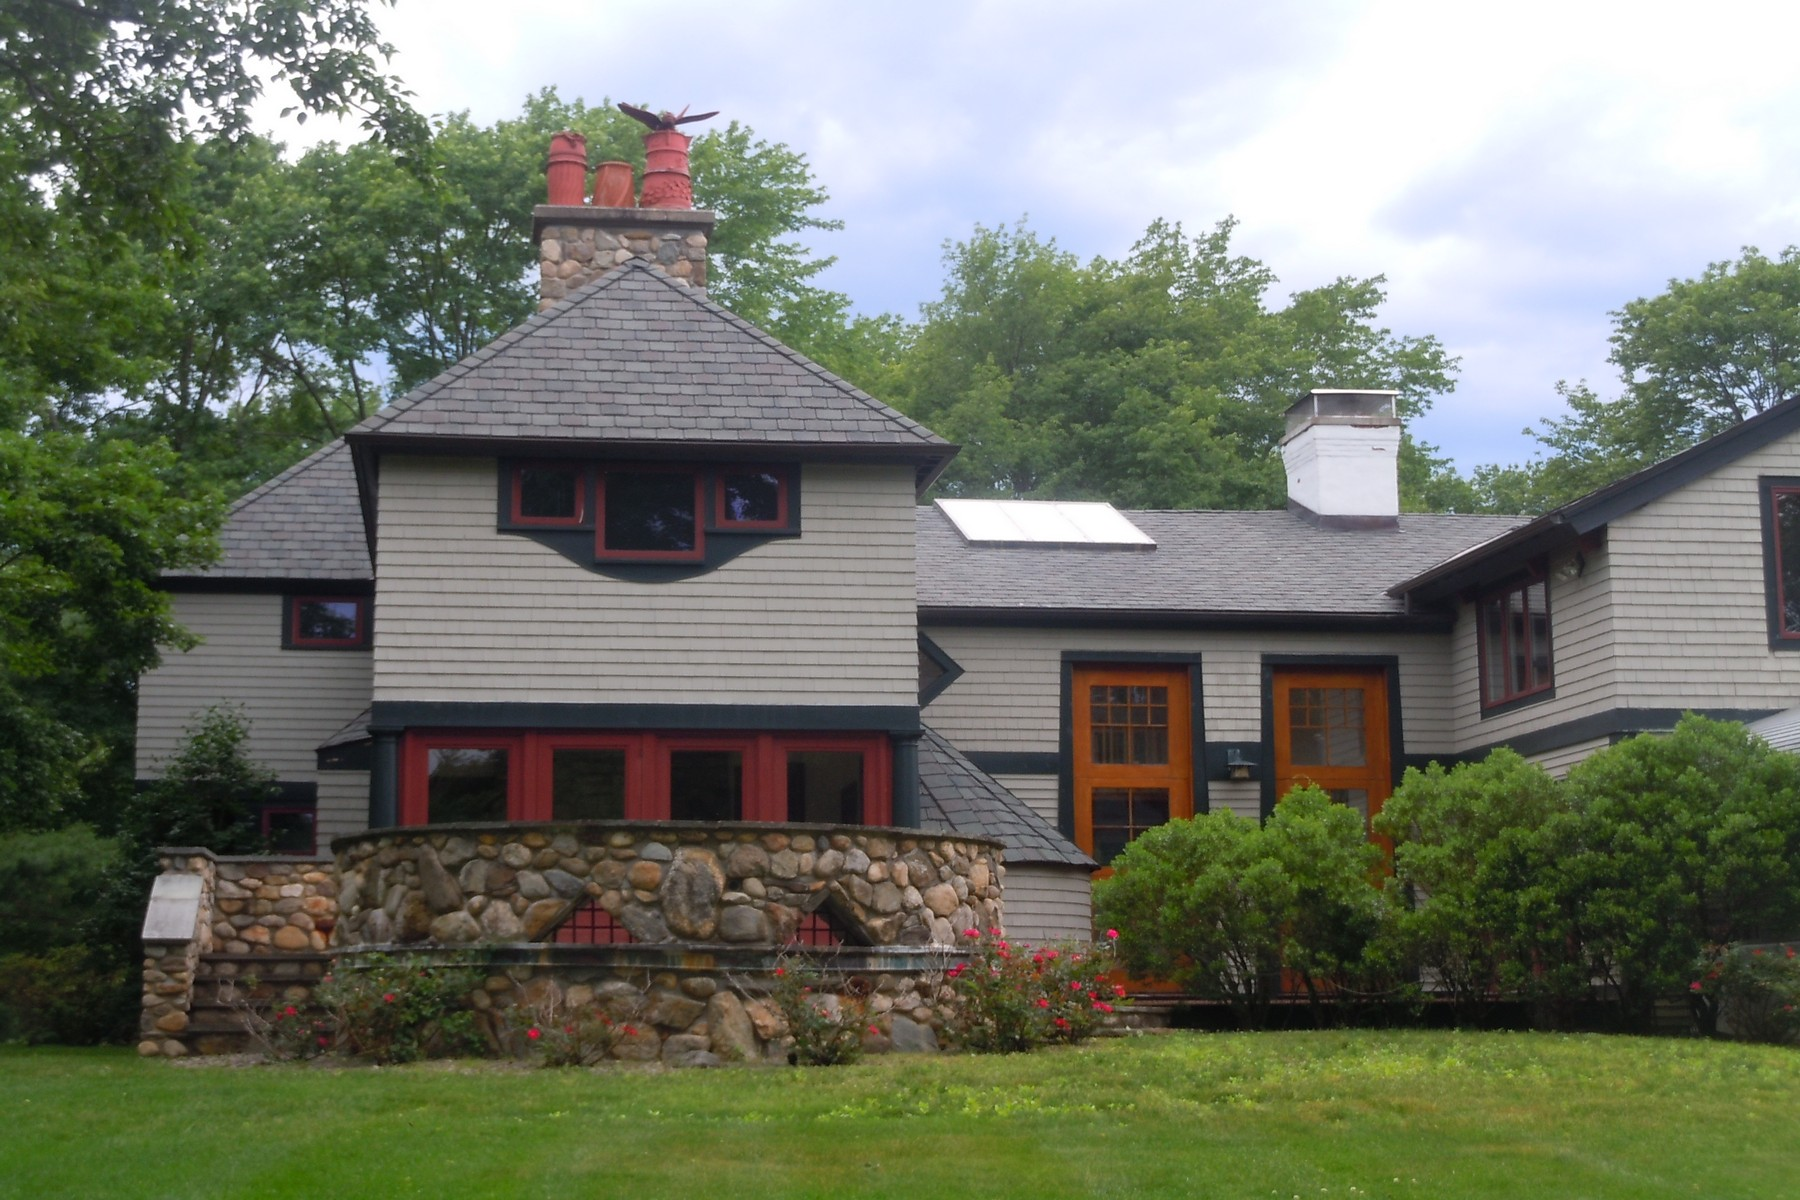 Single Family Home for Sale at Exquisite Estate 240 Main Street Boxford, Massachusetts 01921 United States